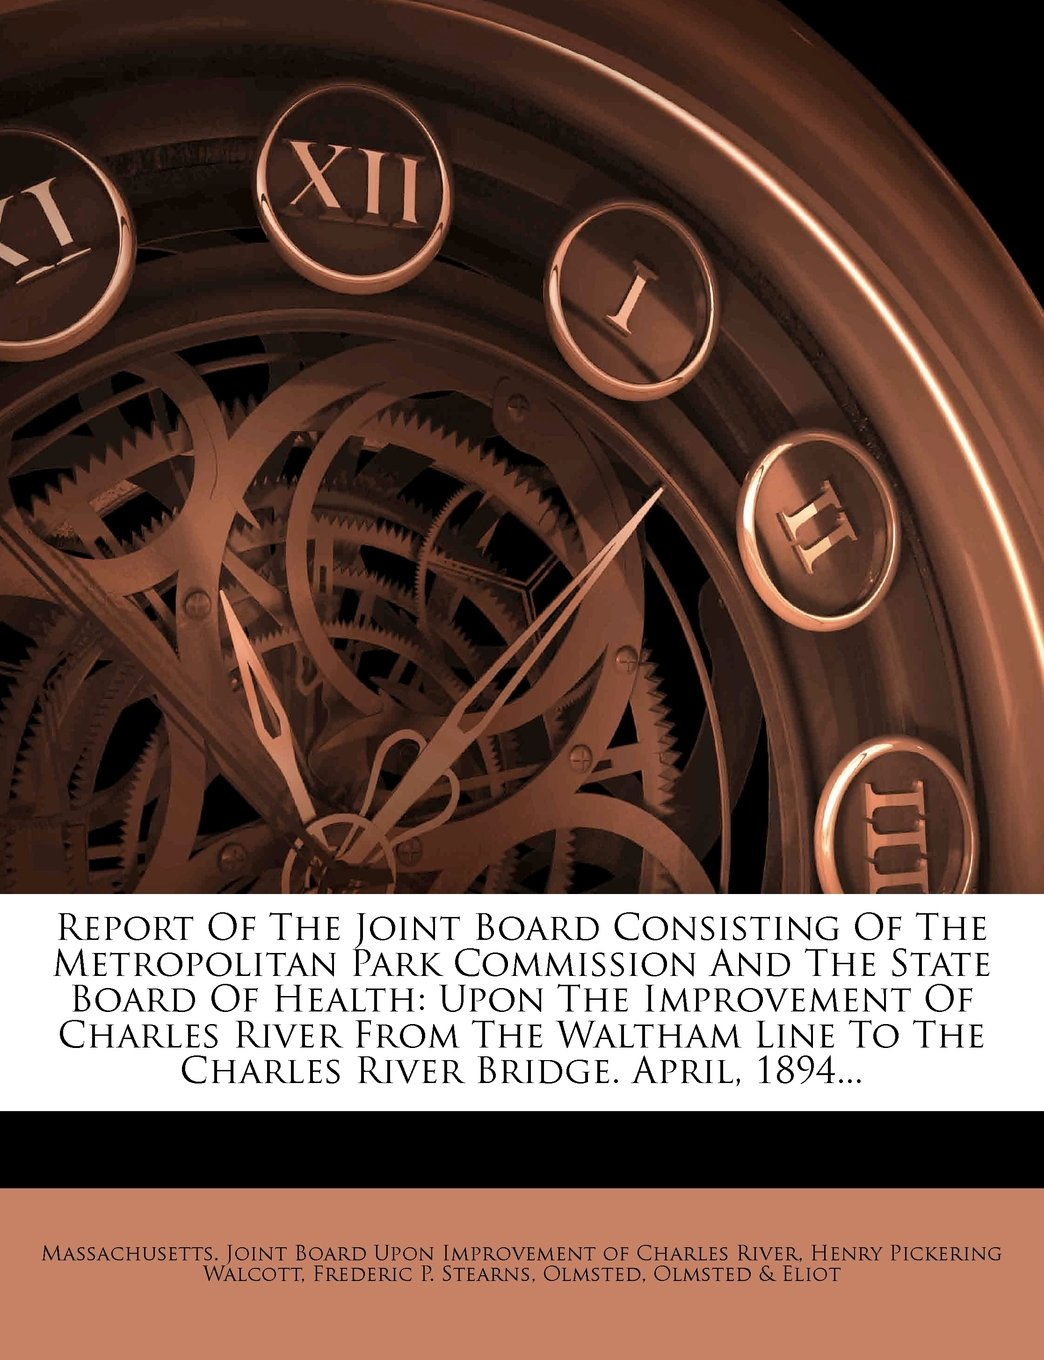 Download Report Of The Joint Board Consisting Of The Metropolitan Park Commission And The State Board Of Health: Upon The Improvement Of Charles River From The ... To The Charles River Bridge. April, 1894... pdf